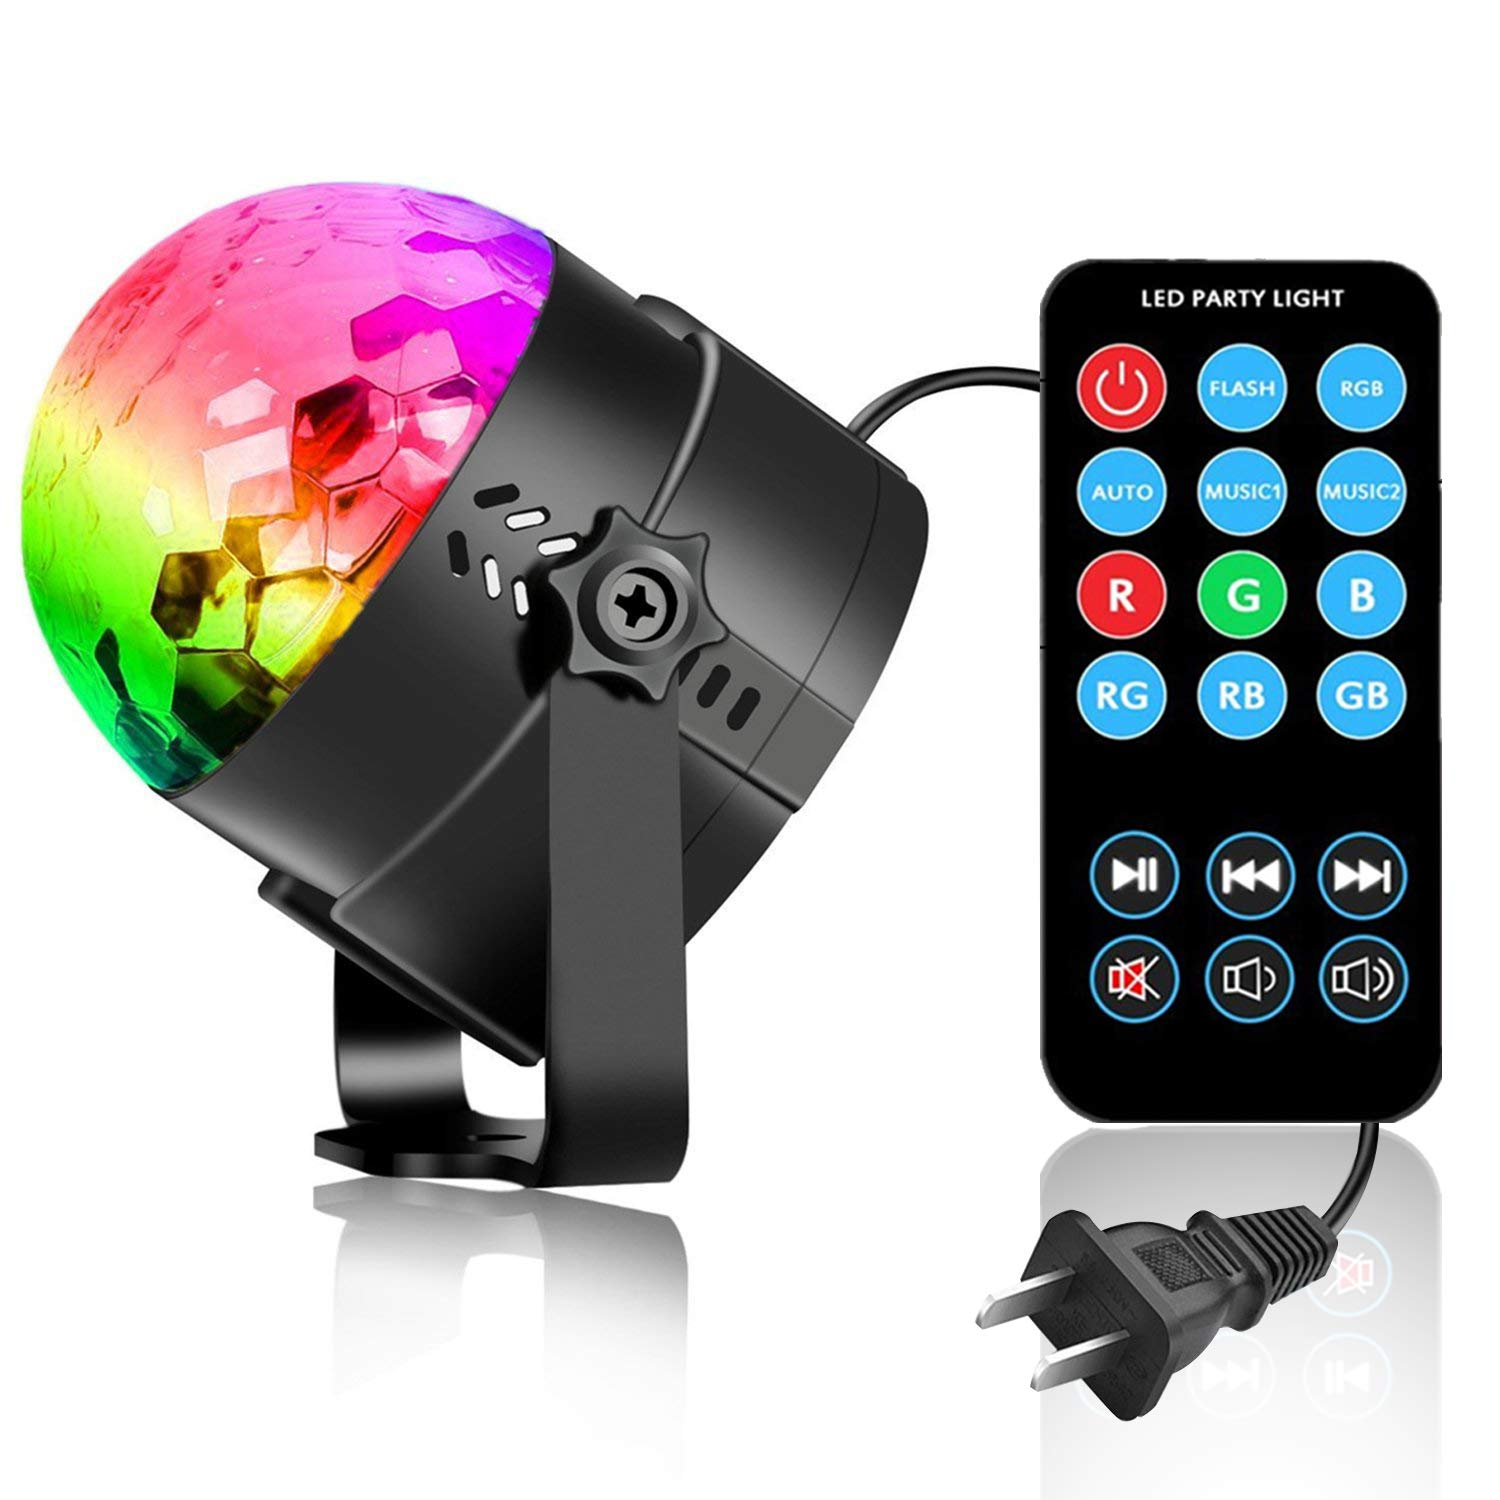 COIDEA Disco Lights Disco Ball LED Party Lights Sound Activated Multiple Modes Supplies Strobe Light Dance Light for Kid, Parties, Bedroom, Birthday (with Remote) by COIDEA